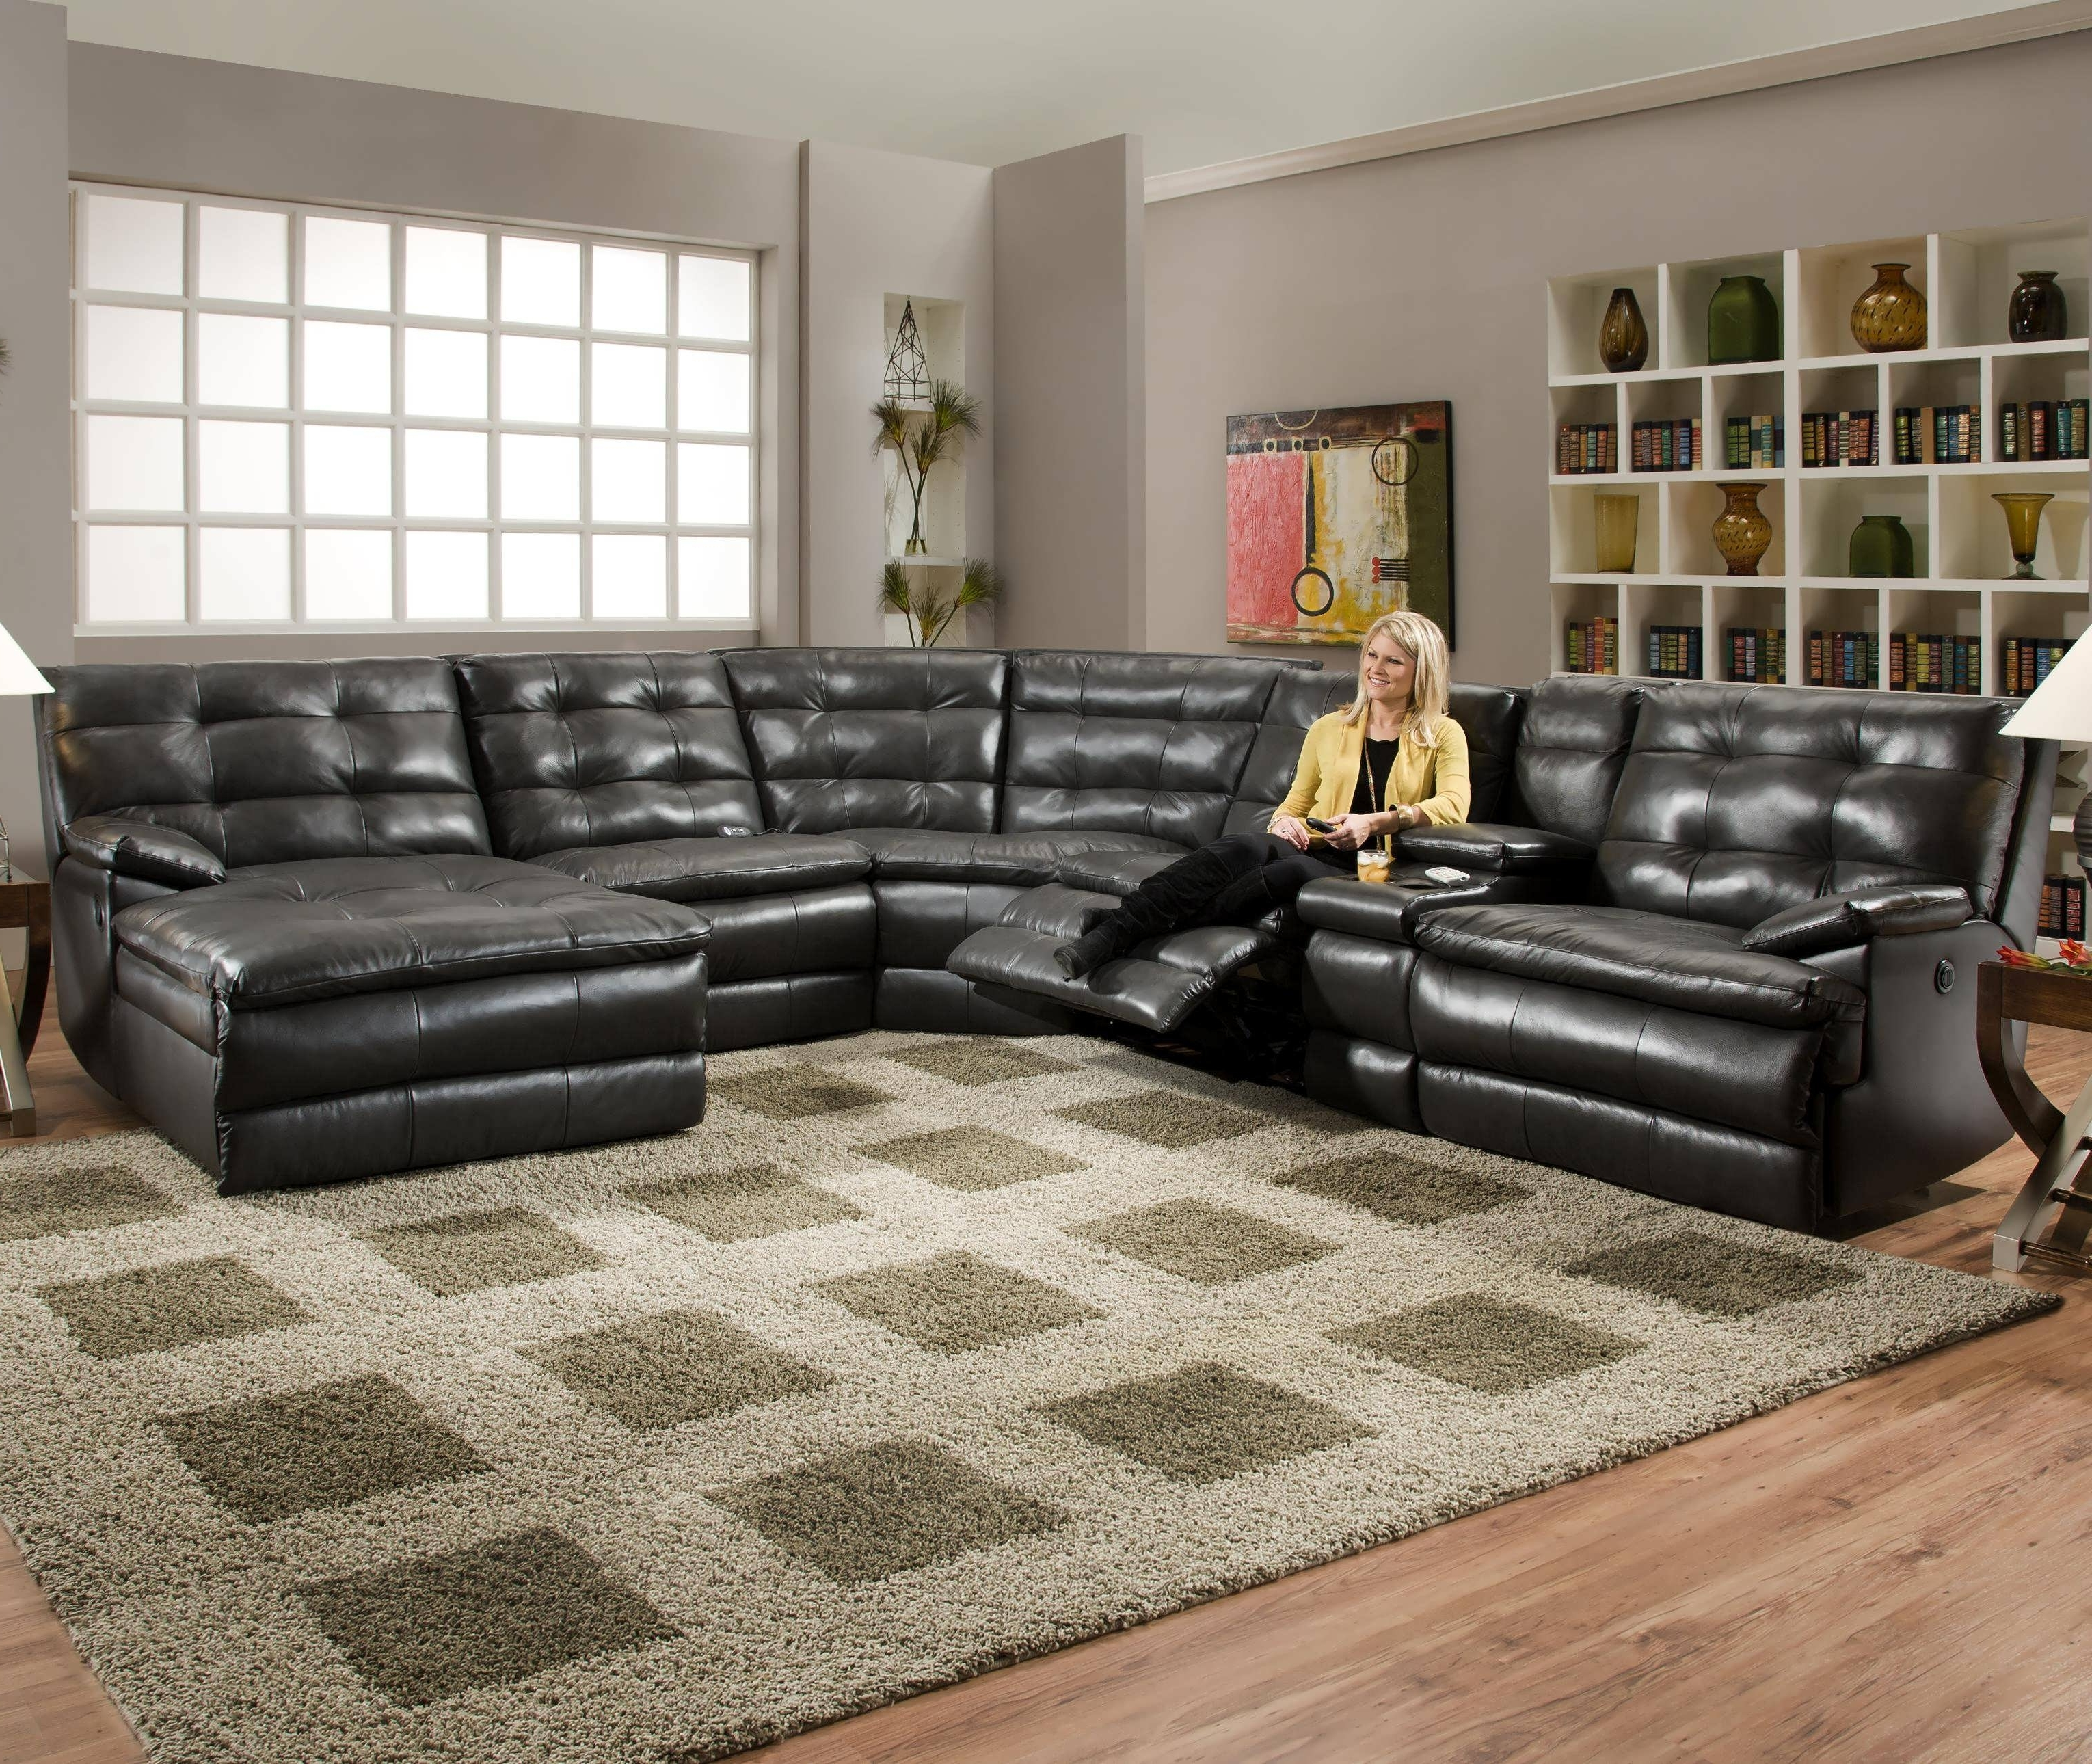 Sofa : Couch Sectionals Chaise Sofa Reclining Sectional With Regarding Latest Sofa Sectionals With Chaise (View 10 of 15)